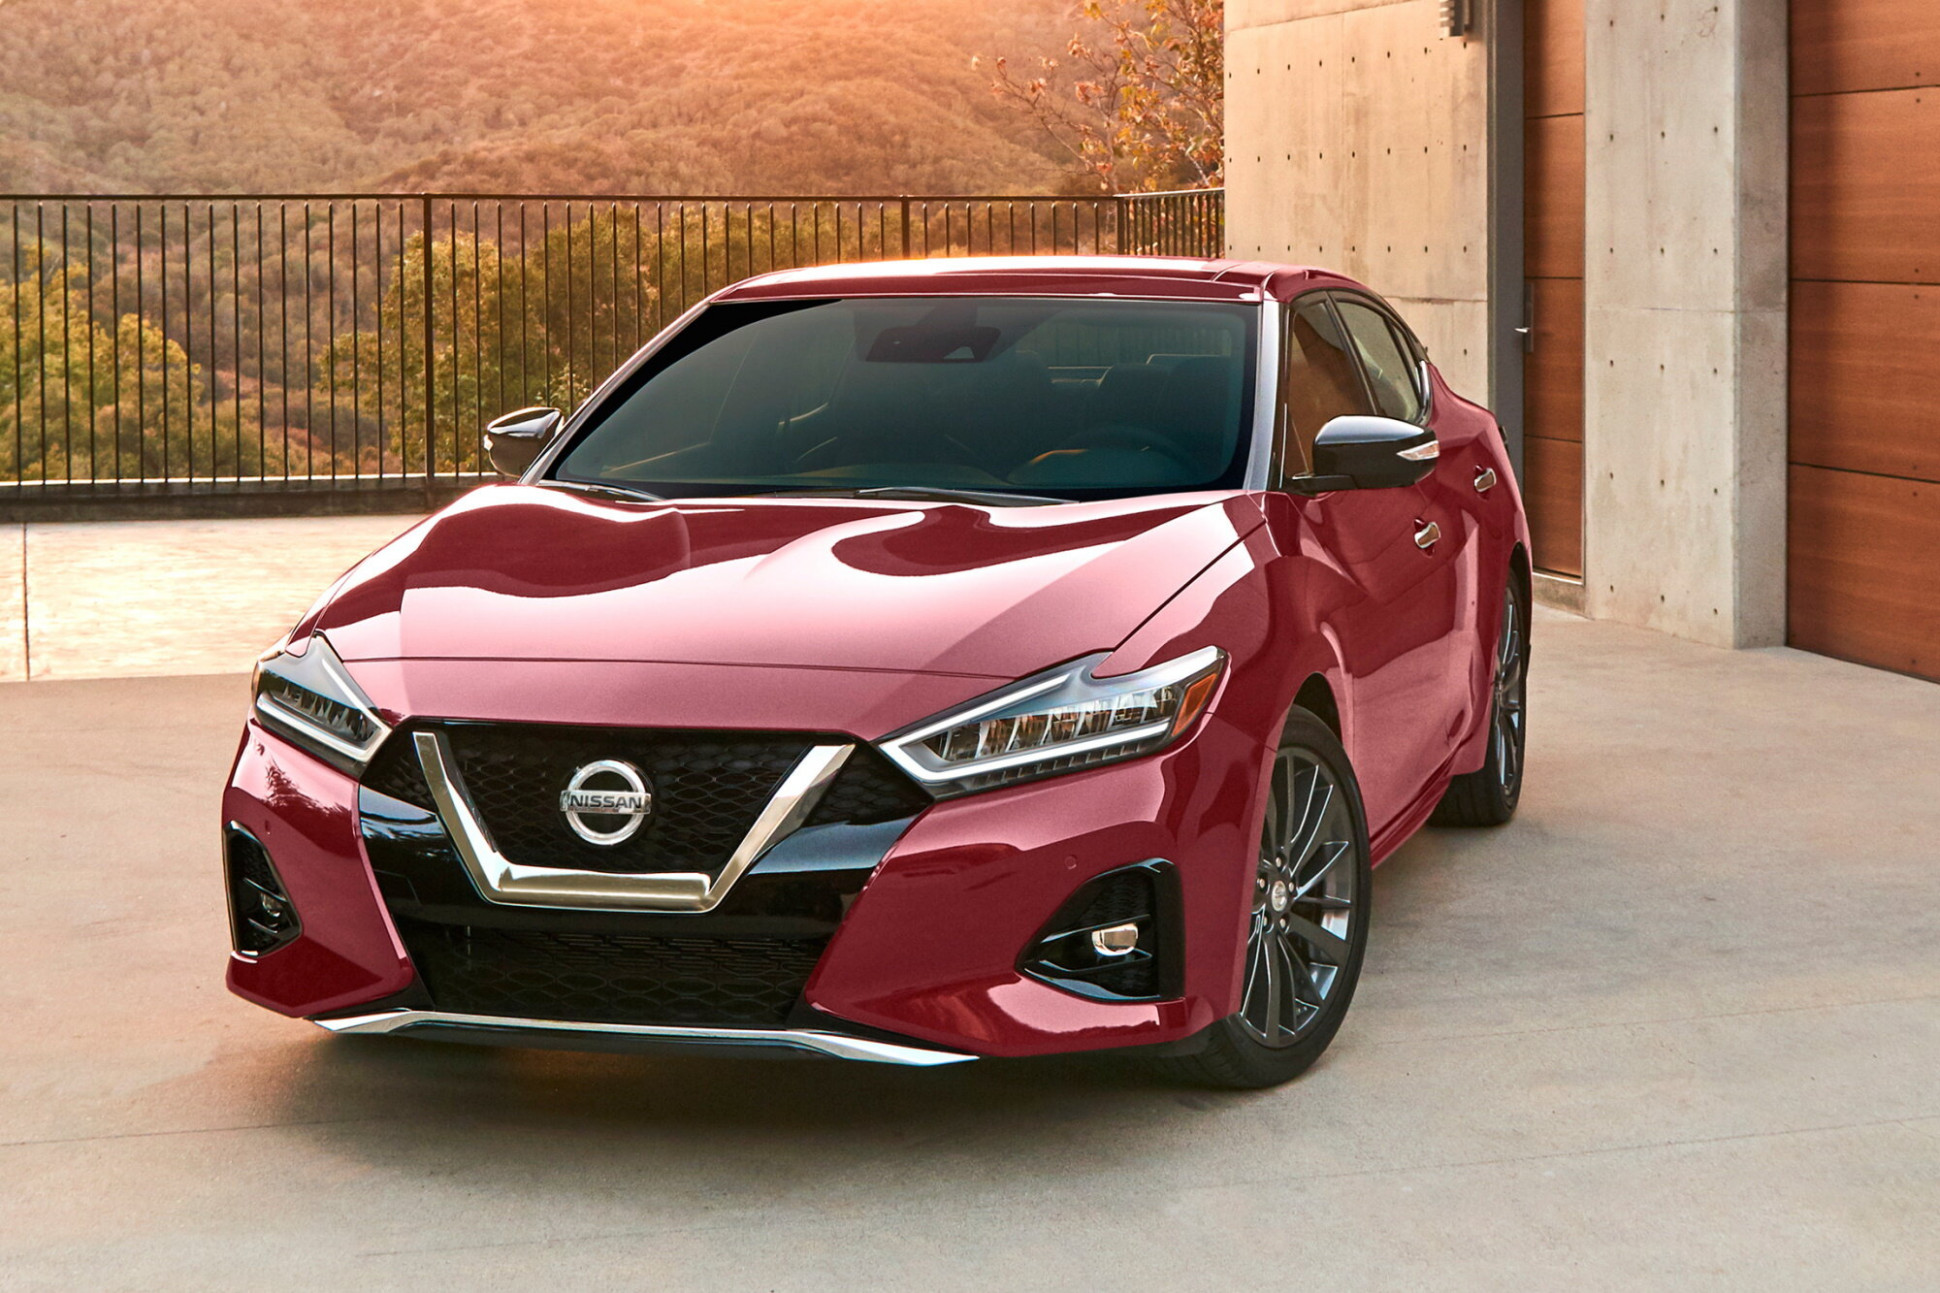 History When Does The 2022 Nissan Maxima Come Out